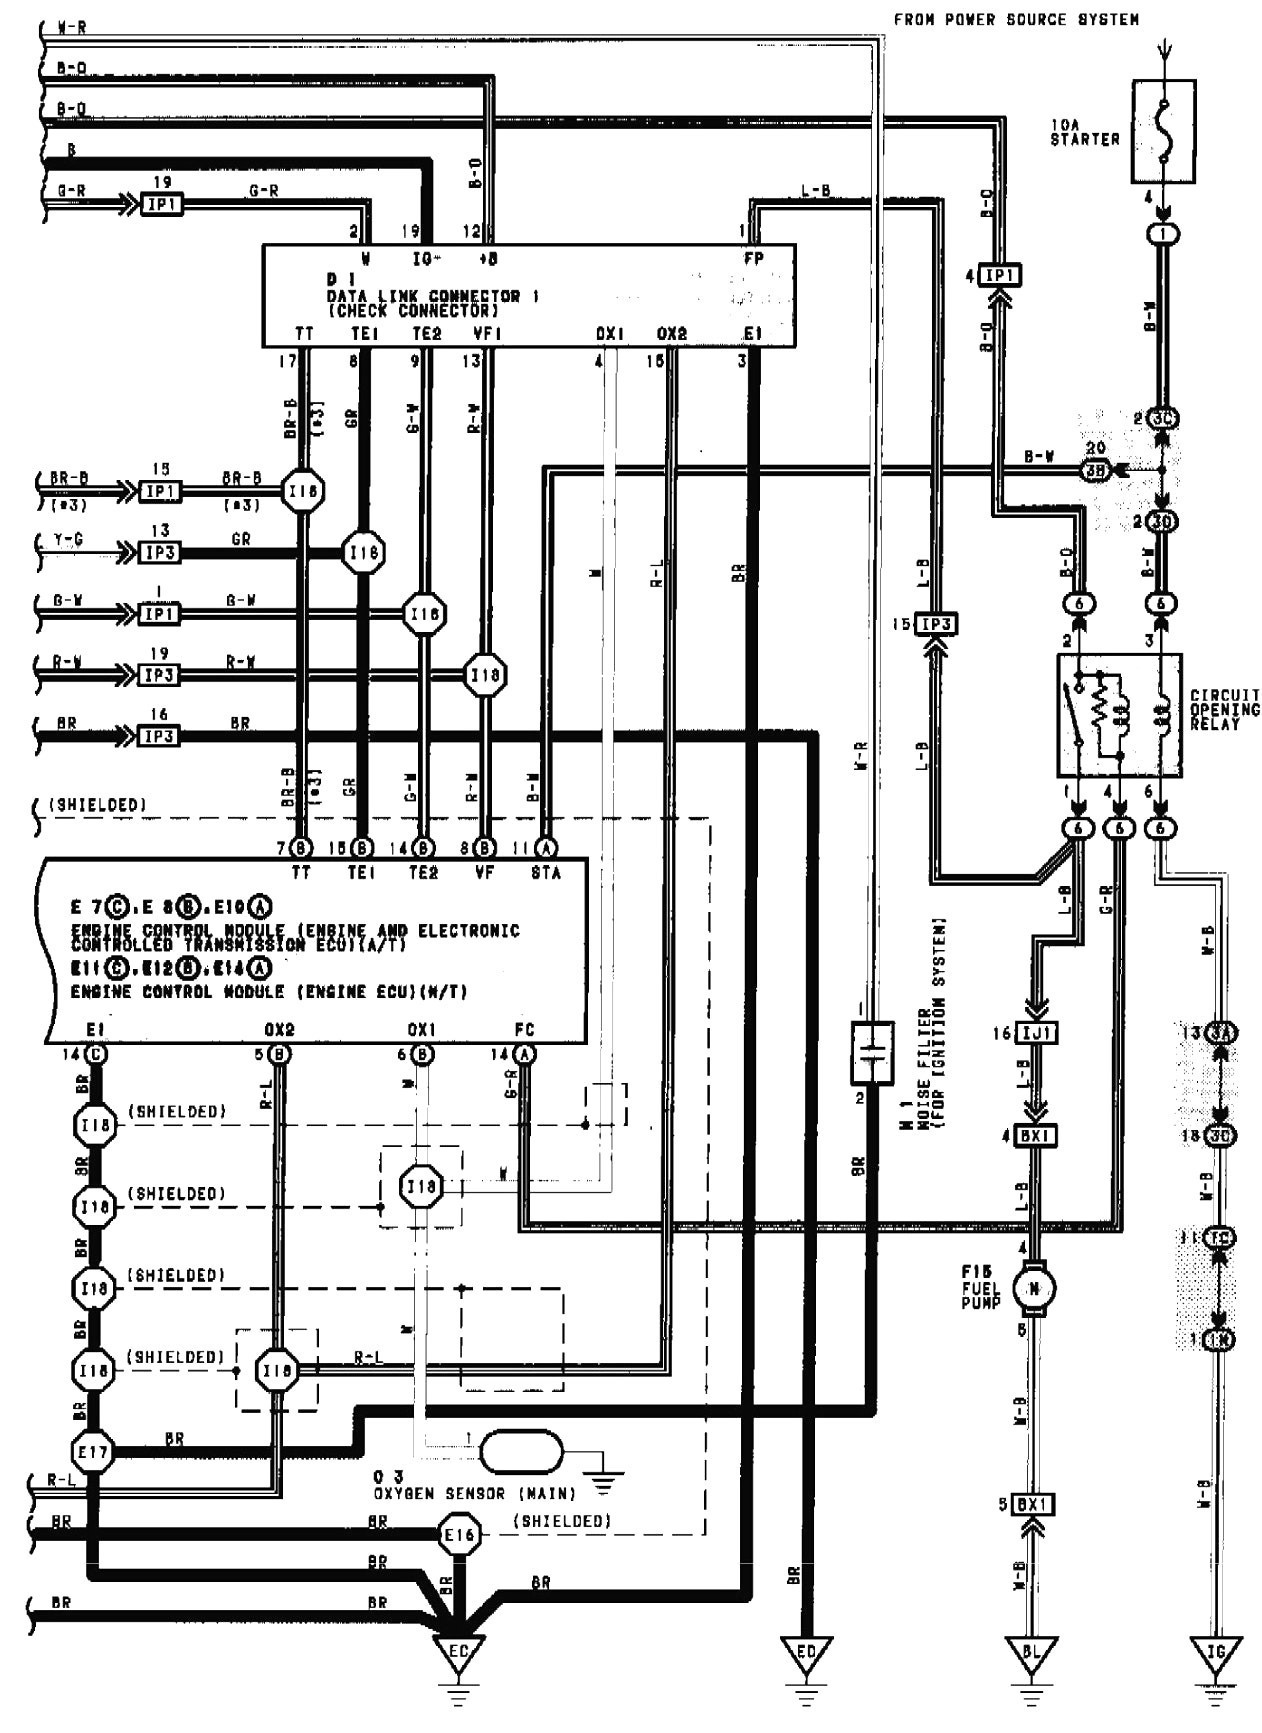 1990 Toyota Camry Wiring Diagram 1989 Van Fuse Box Electrical Moreover 2000 Corolla Of